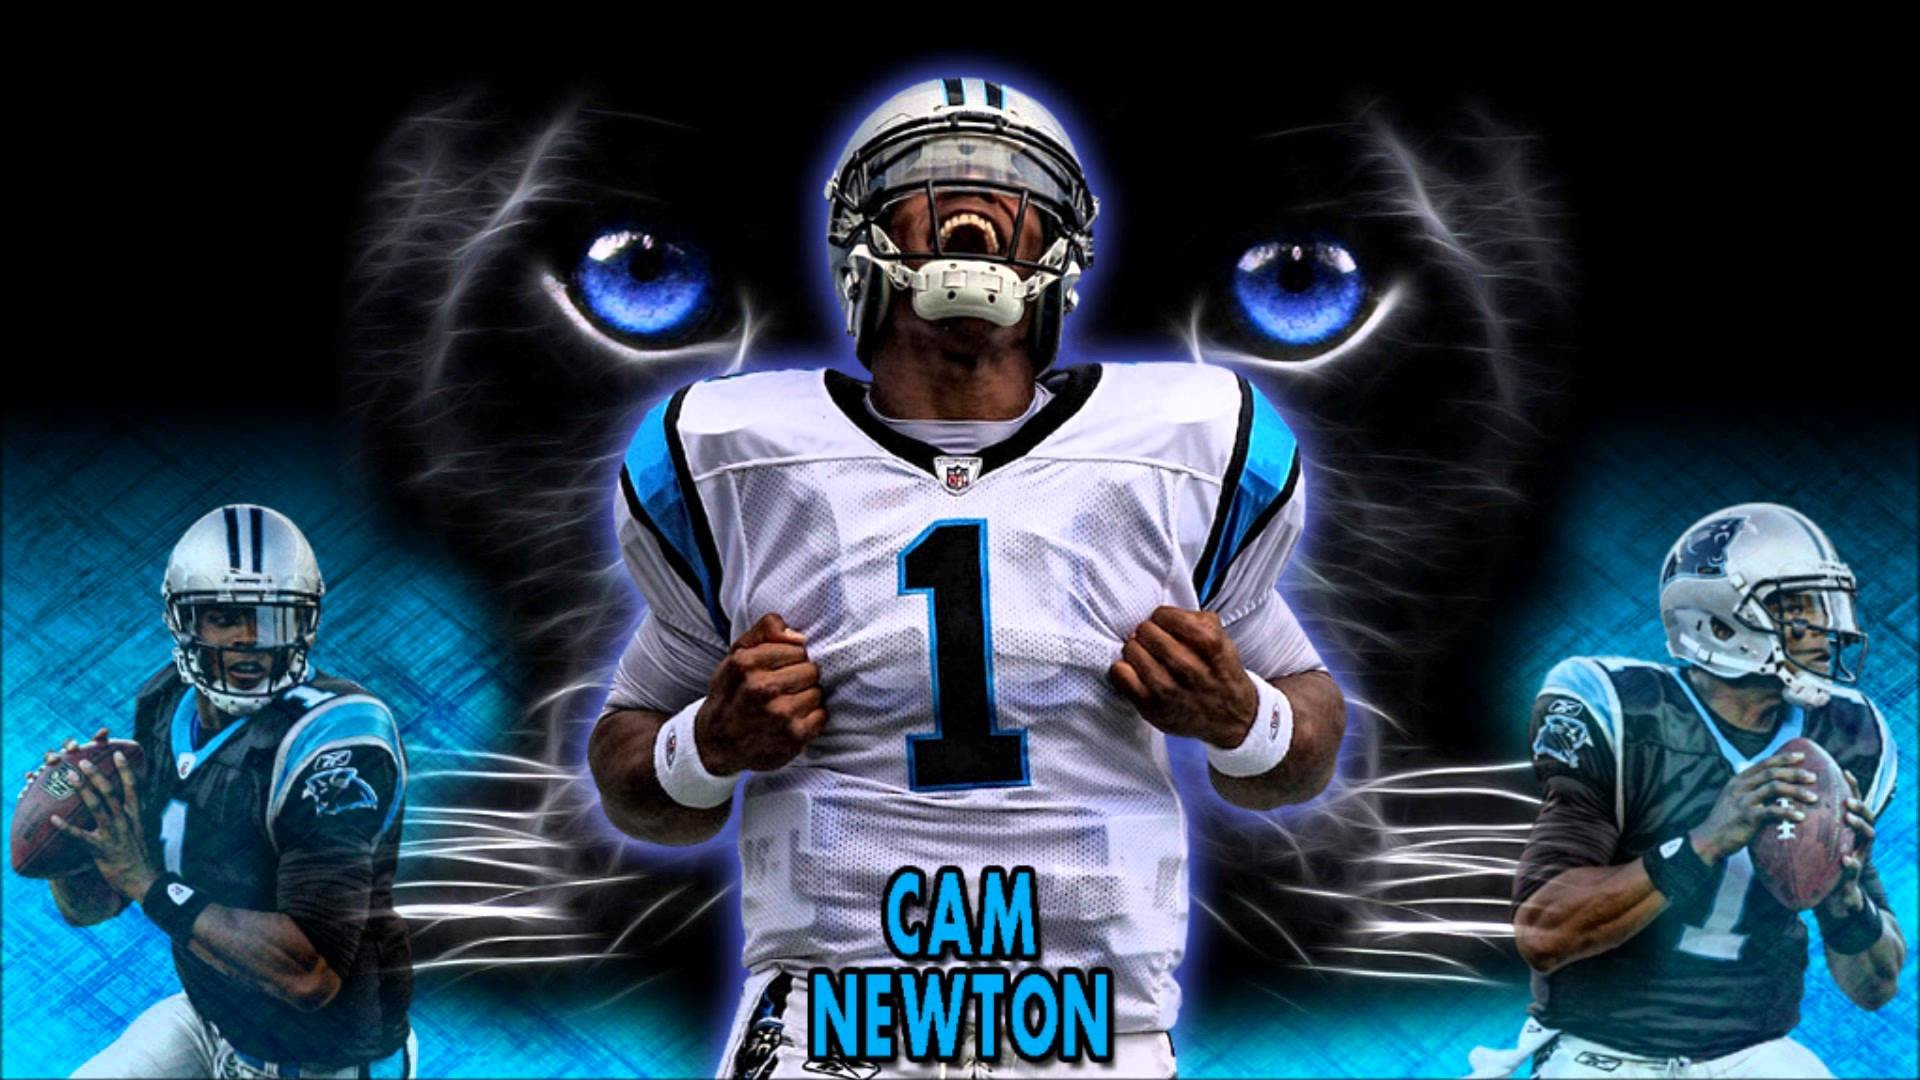 Free download Cam Newton background ID:57586 full hd 1920x1080 for computer